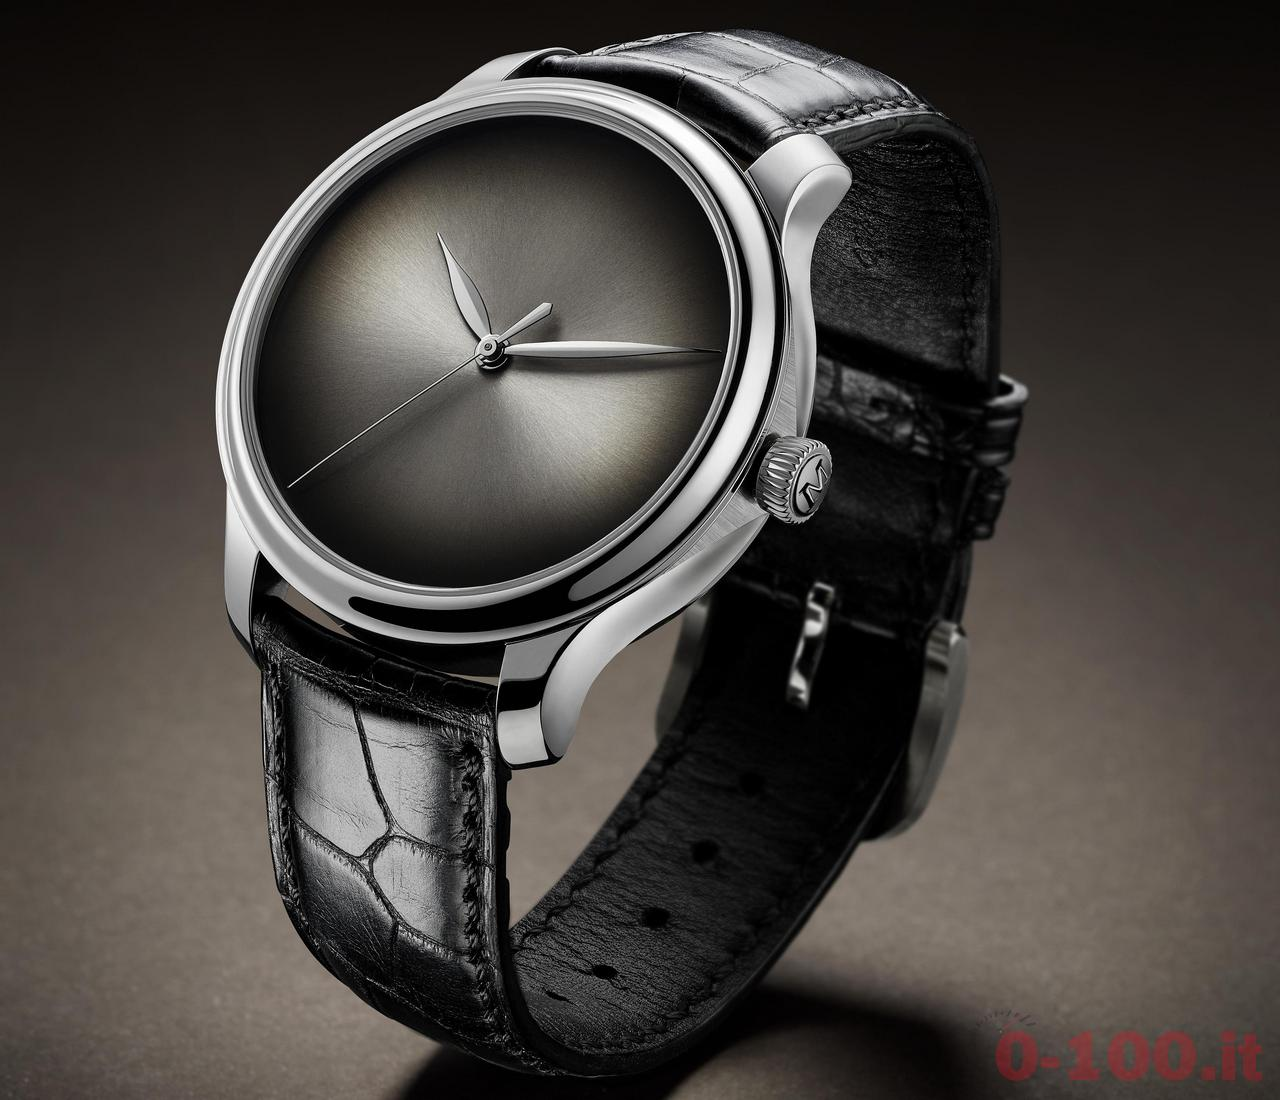 anteprima-baselworld-2015-h-moser-cie-concept-watch-price_0-100_1